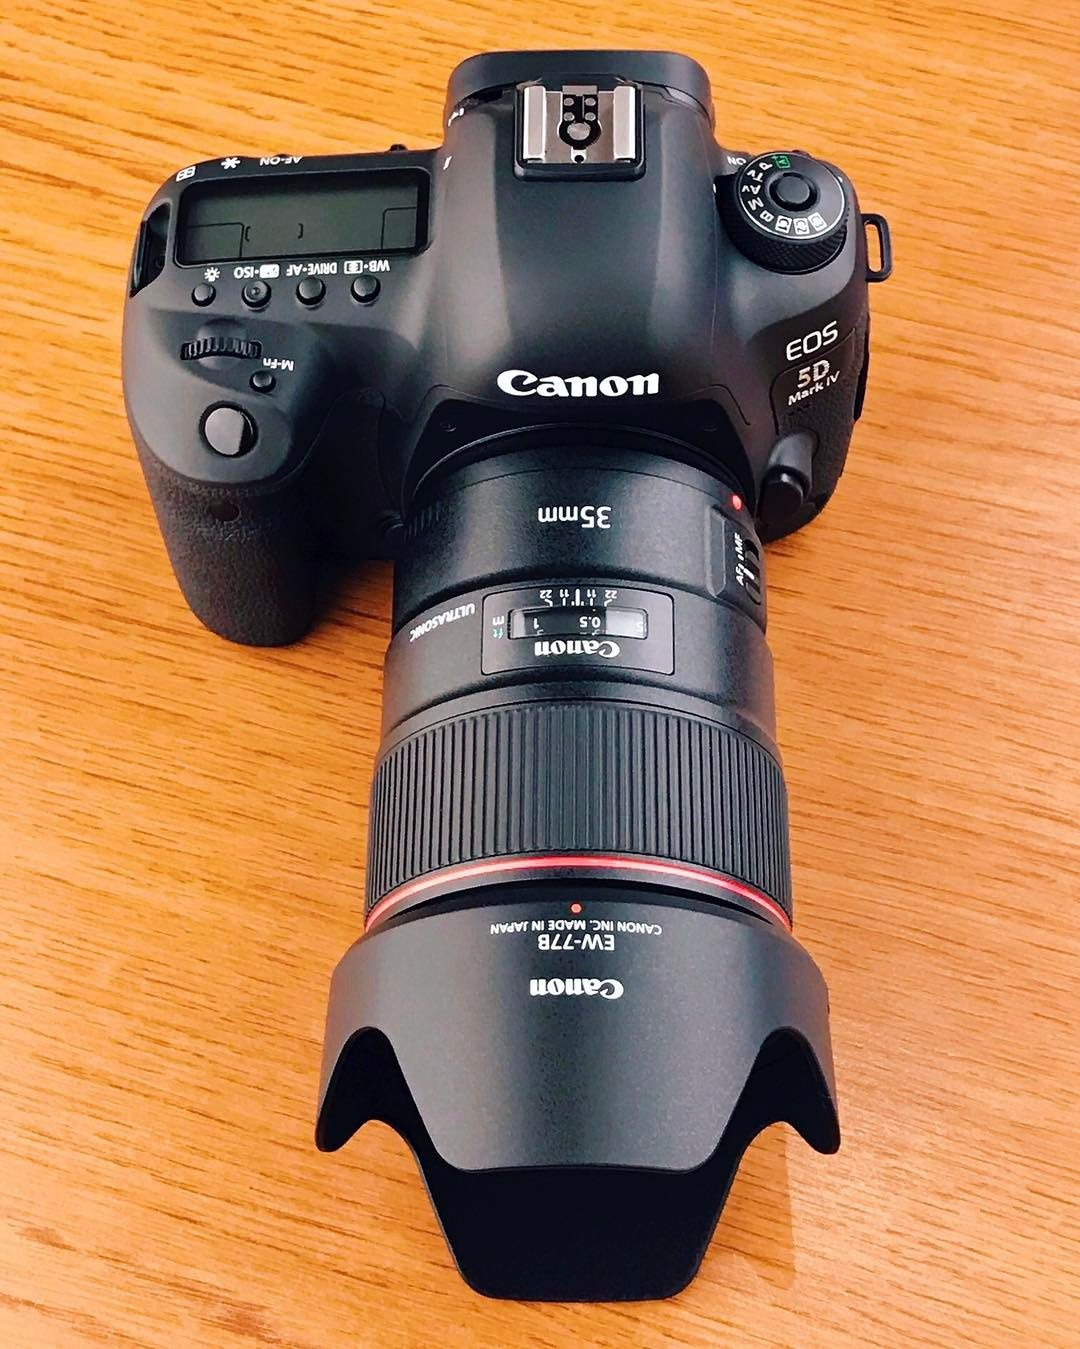 Thephotogear On Instagram We Are Absolutely In Love With 35mm Focal Length We Love To Carry It Around Photography Equipment Photo Gear Canon Digital Camera